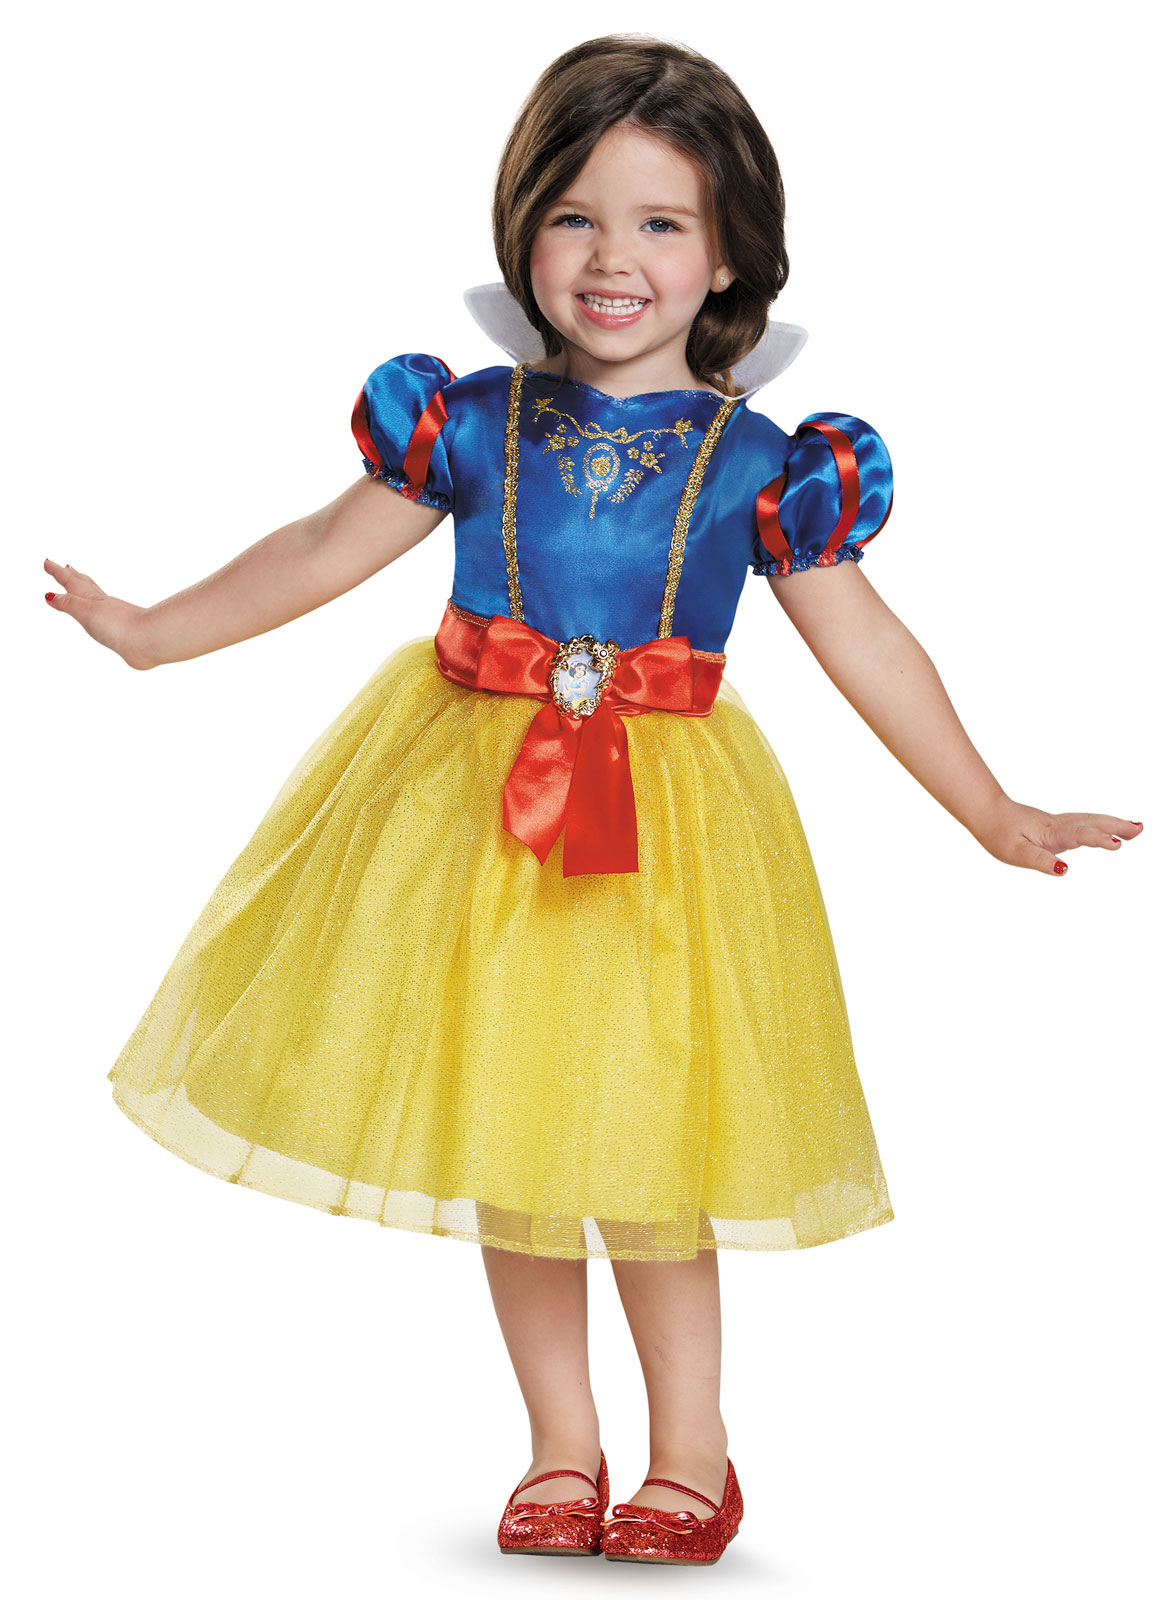 182c8bec169a9 Details about Disney Princess Toddler Classic Snow White Costume